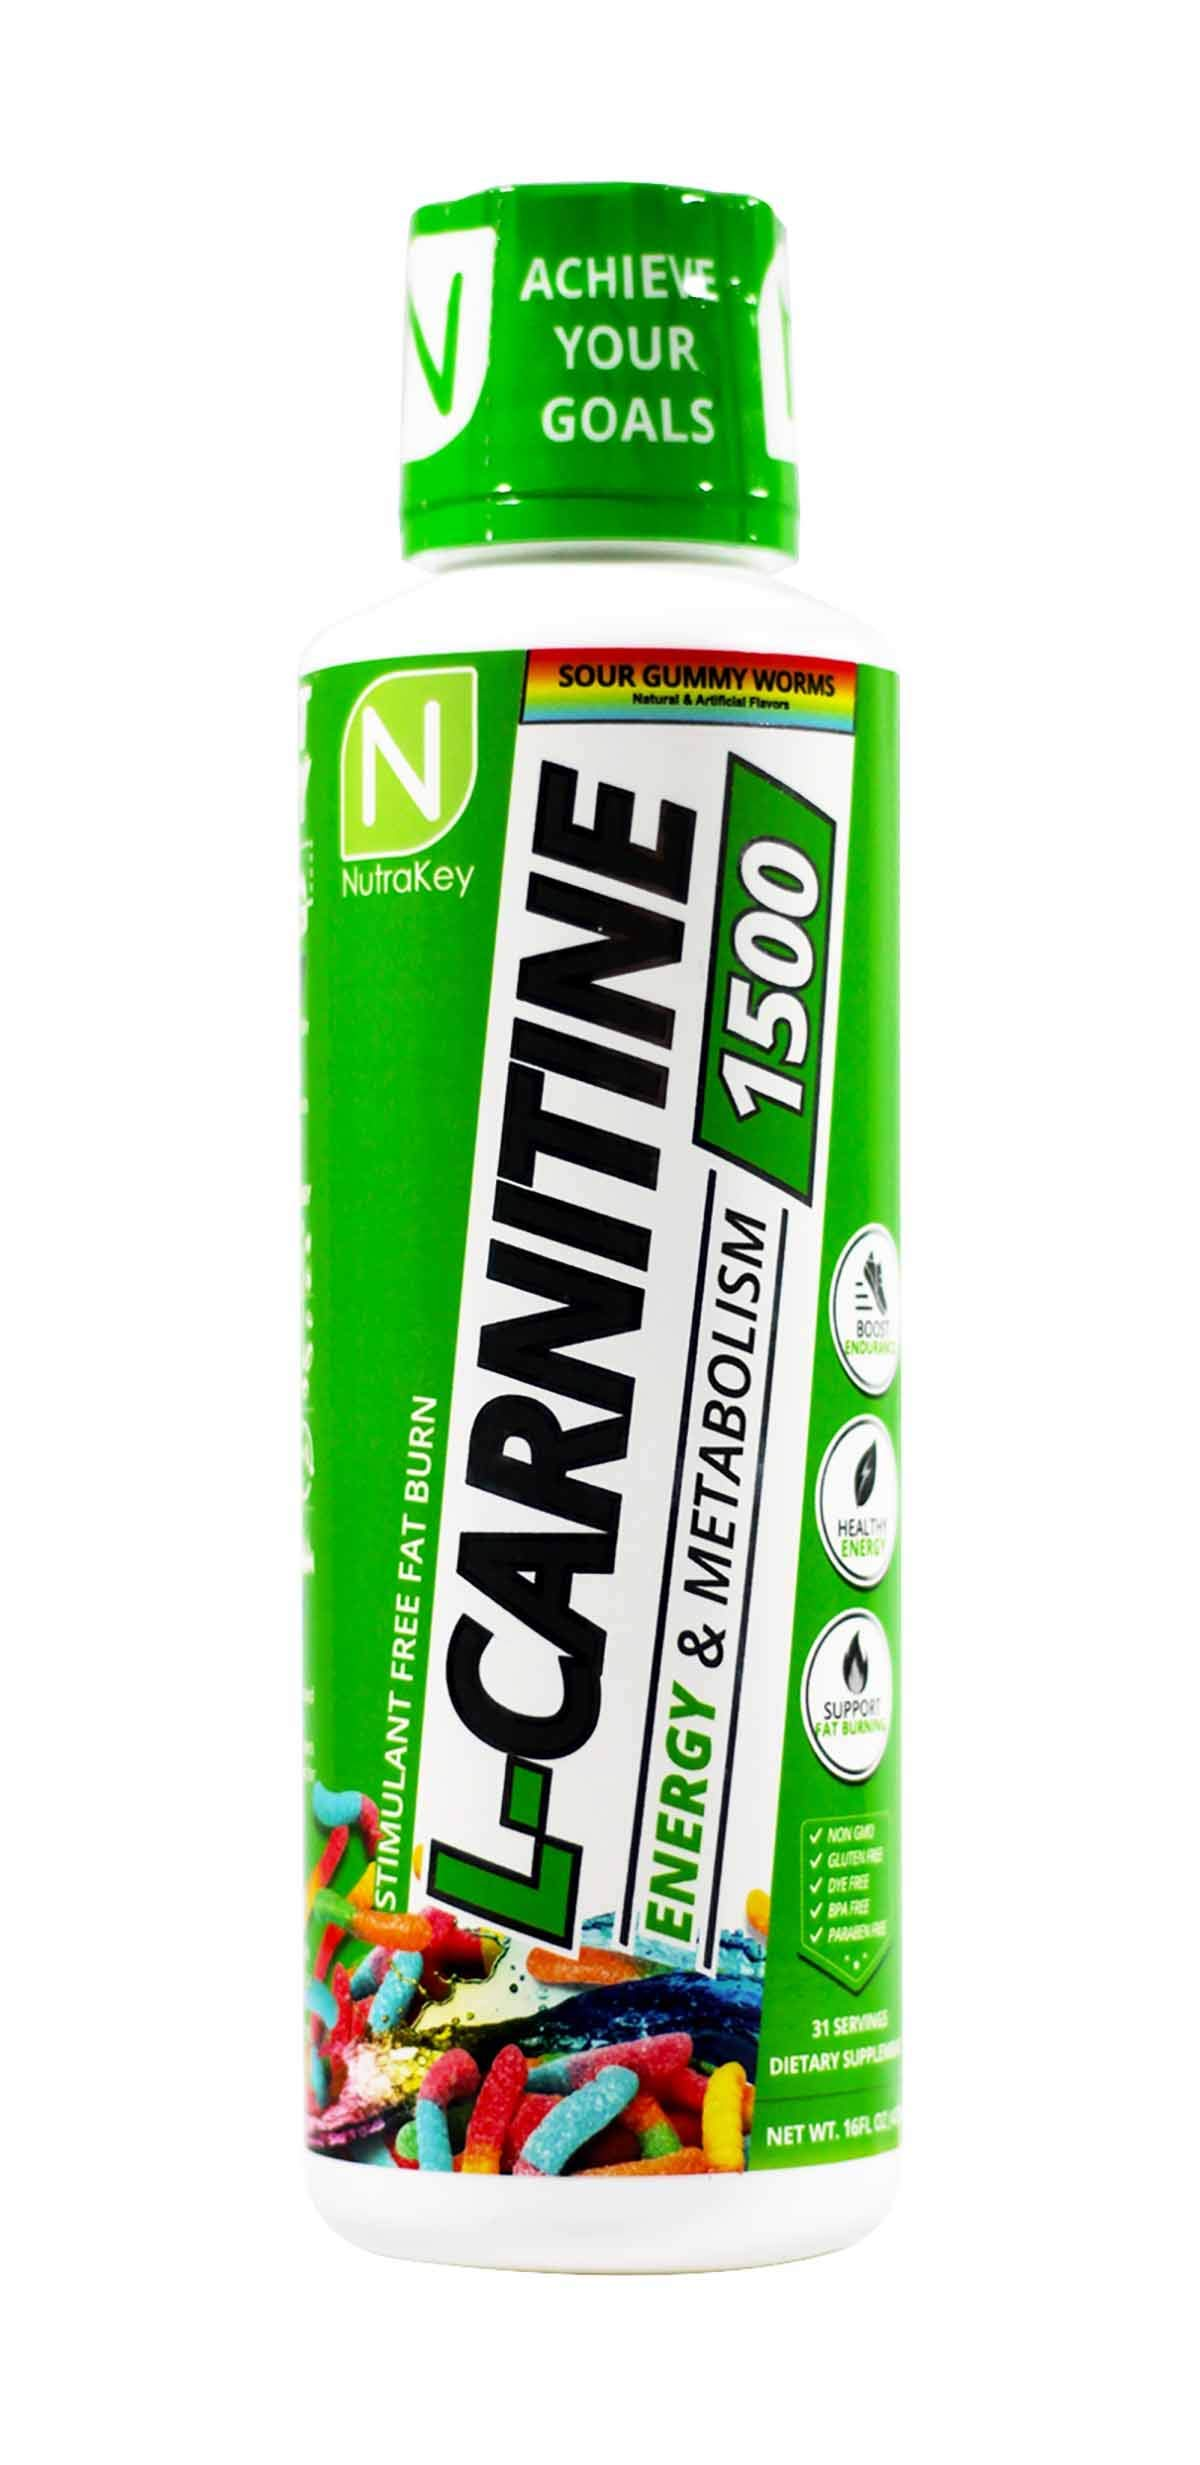 NutraKey L-Carnitine 1500 Liquid Fat Burner, (Sour Gummy Worms) 31 Servings by NutraKey